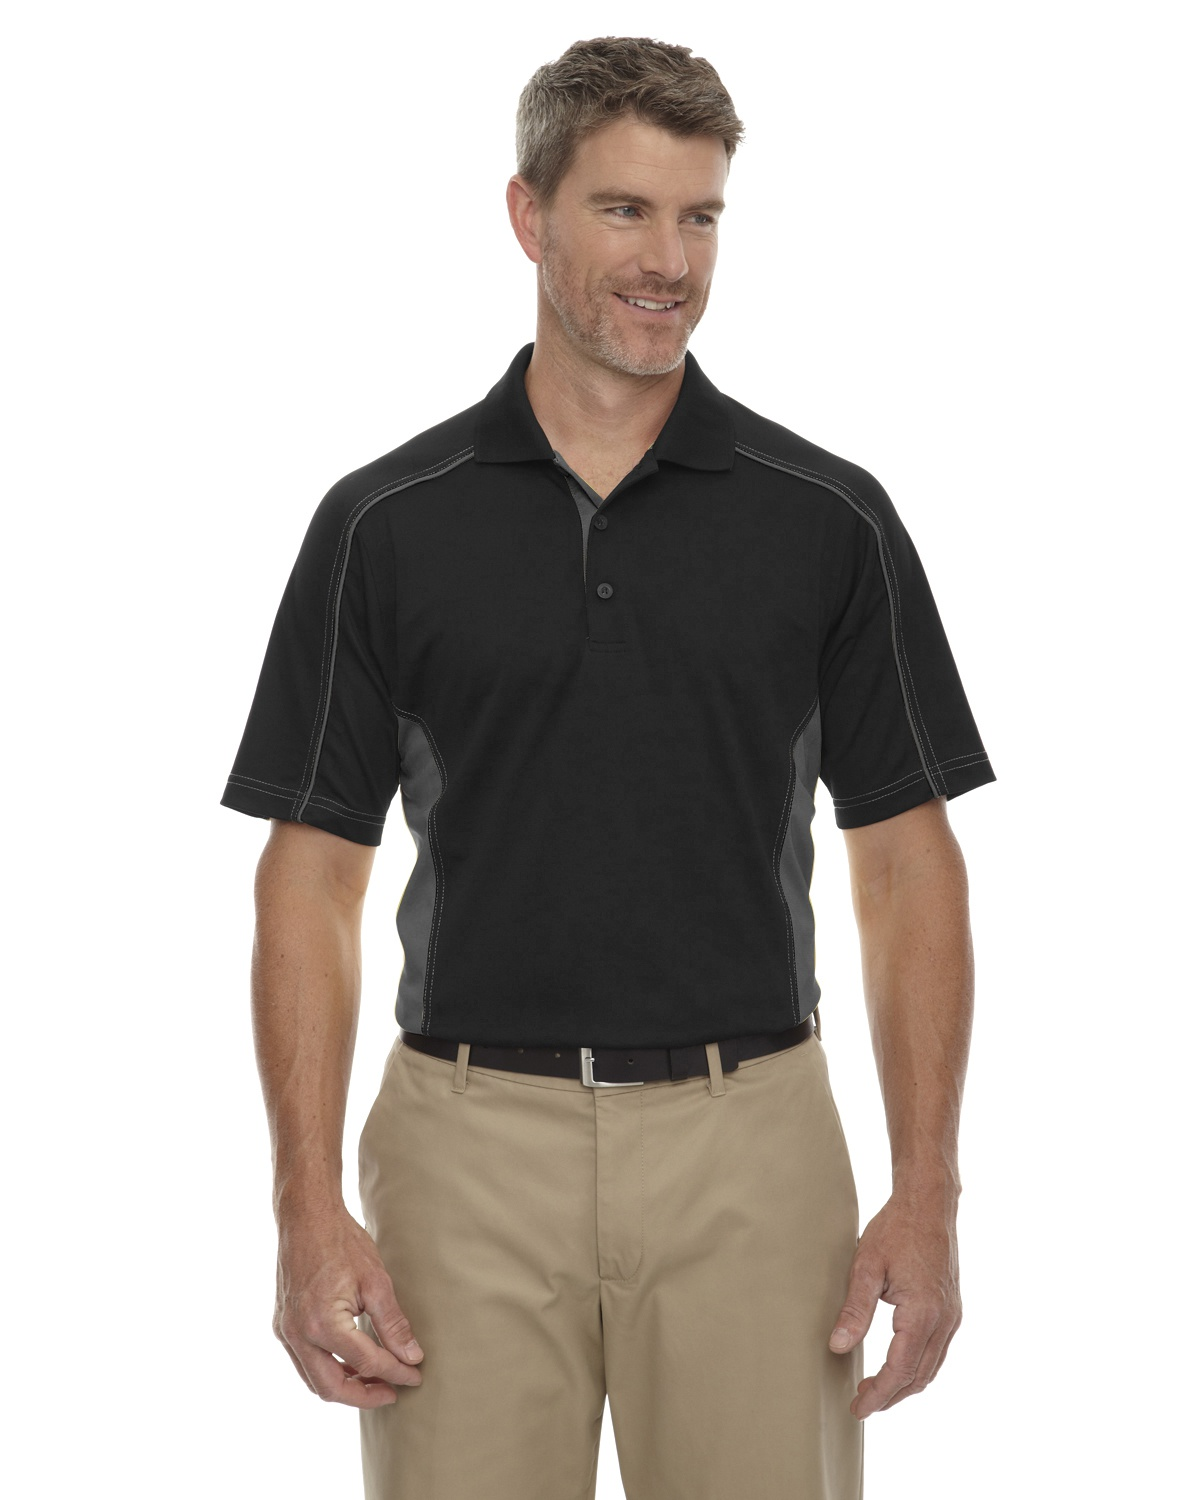 'Ash City - Extreme 85113T Men's Tall Eperformance Fuse Snag Protection Plus Colorblock Polo'